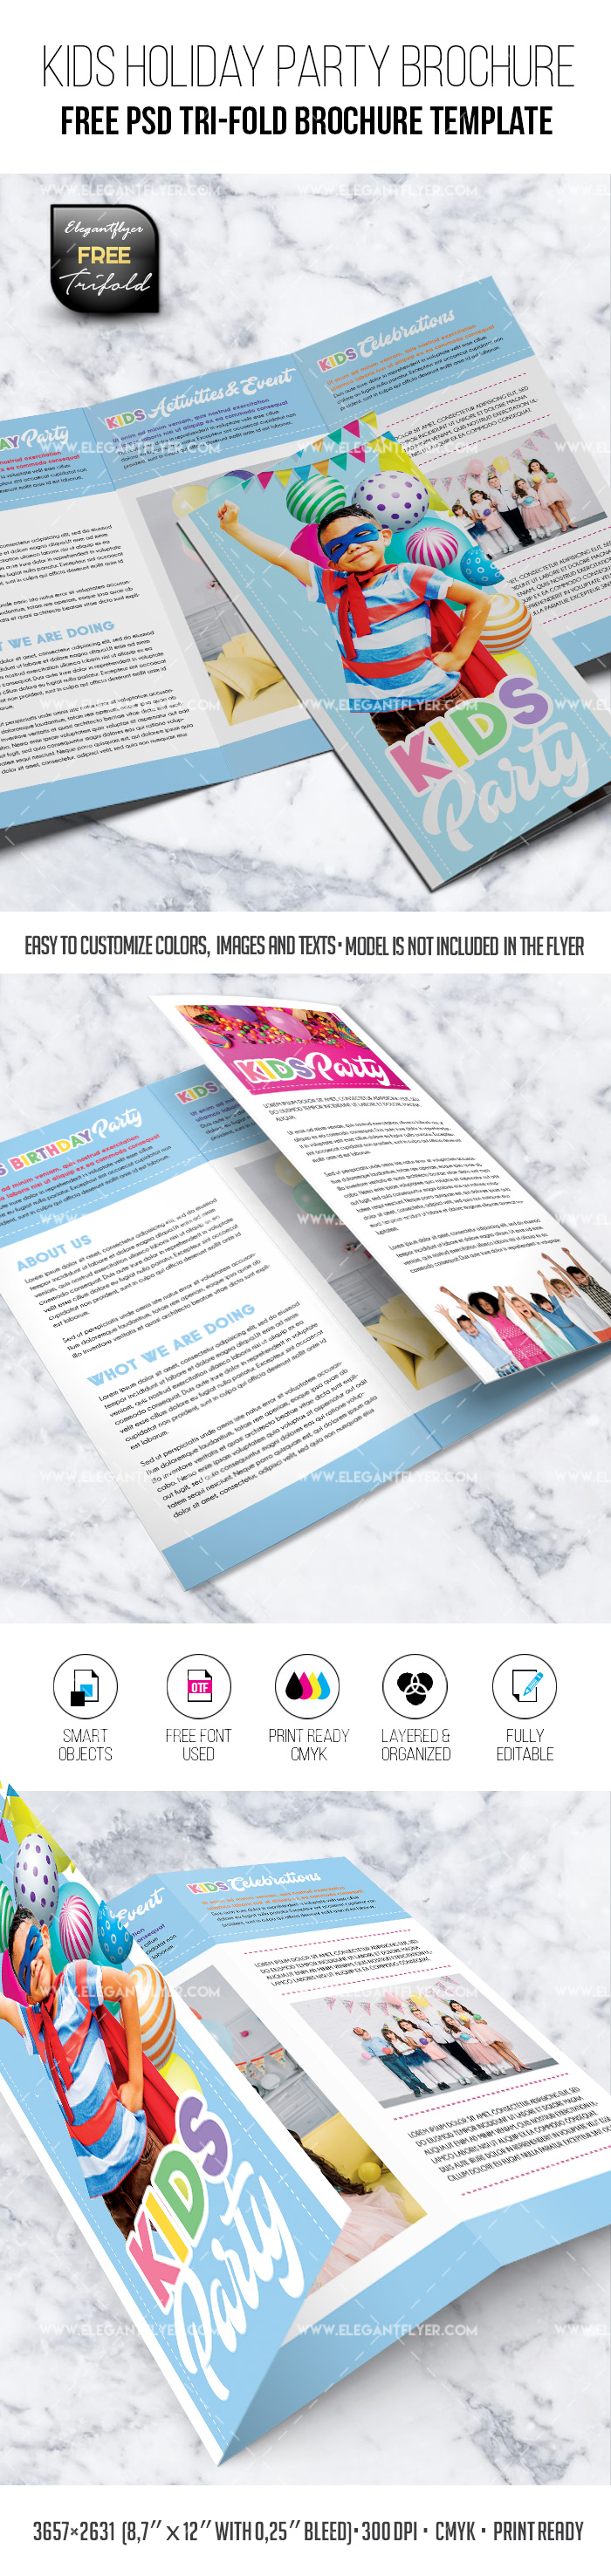 Kids Holiday Party – Free PSD Tri-Fold Brochure Template